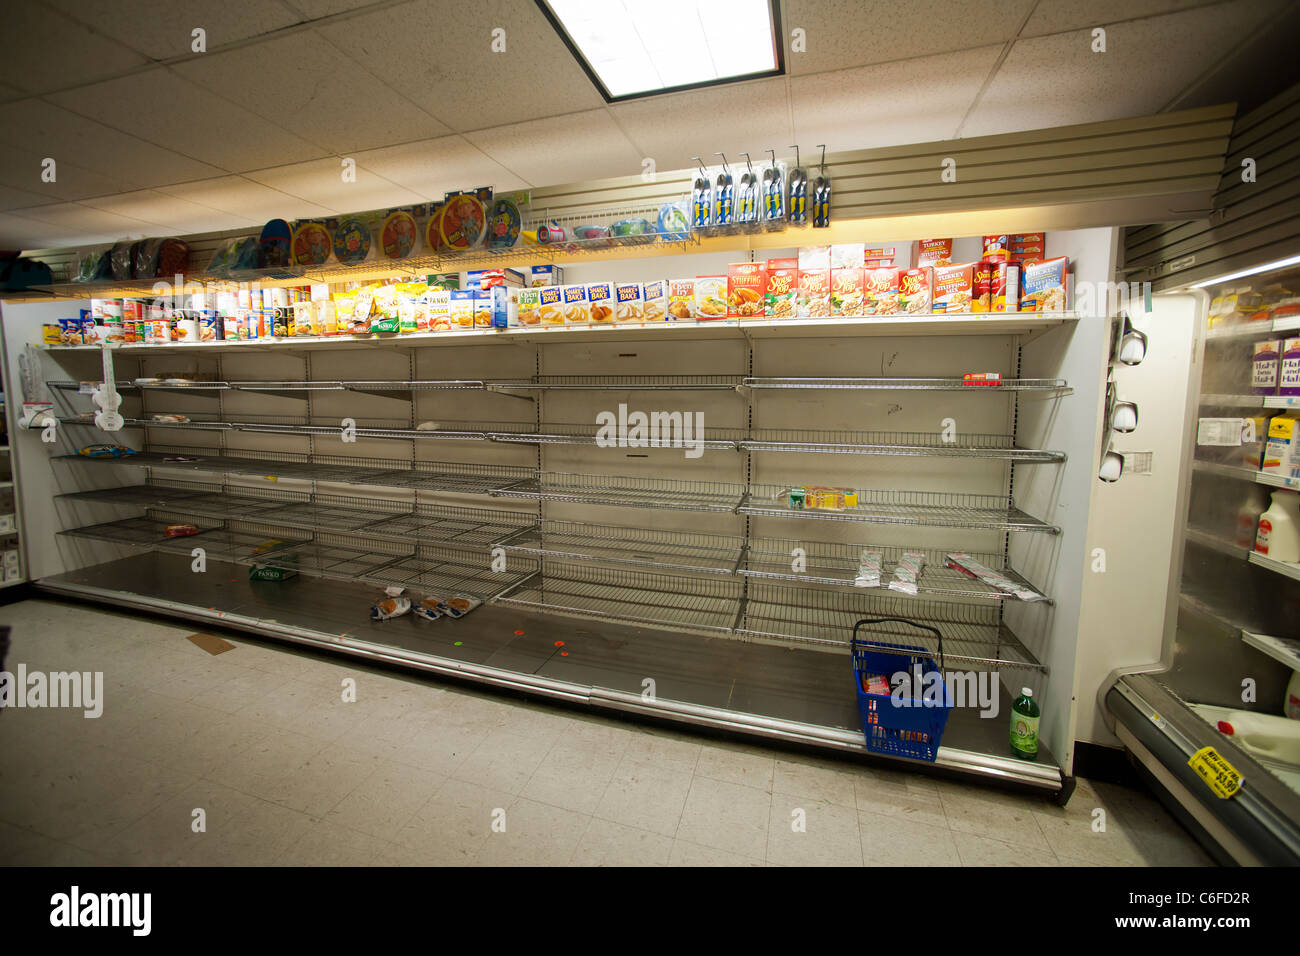 Shelves Stripped Bare Of Bread By Customers Stocking Up For